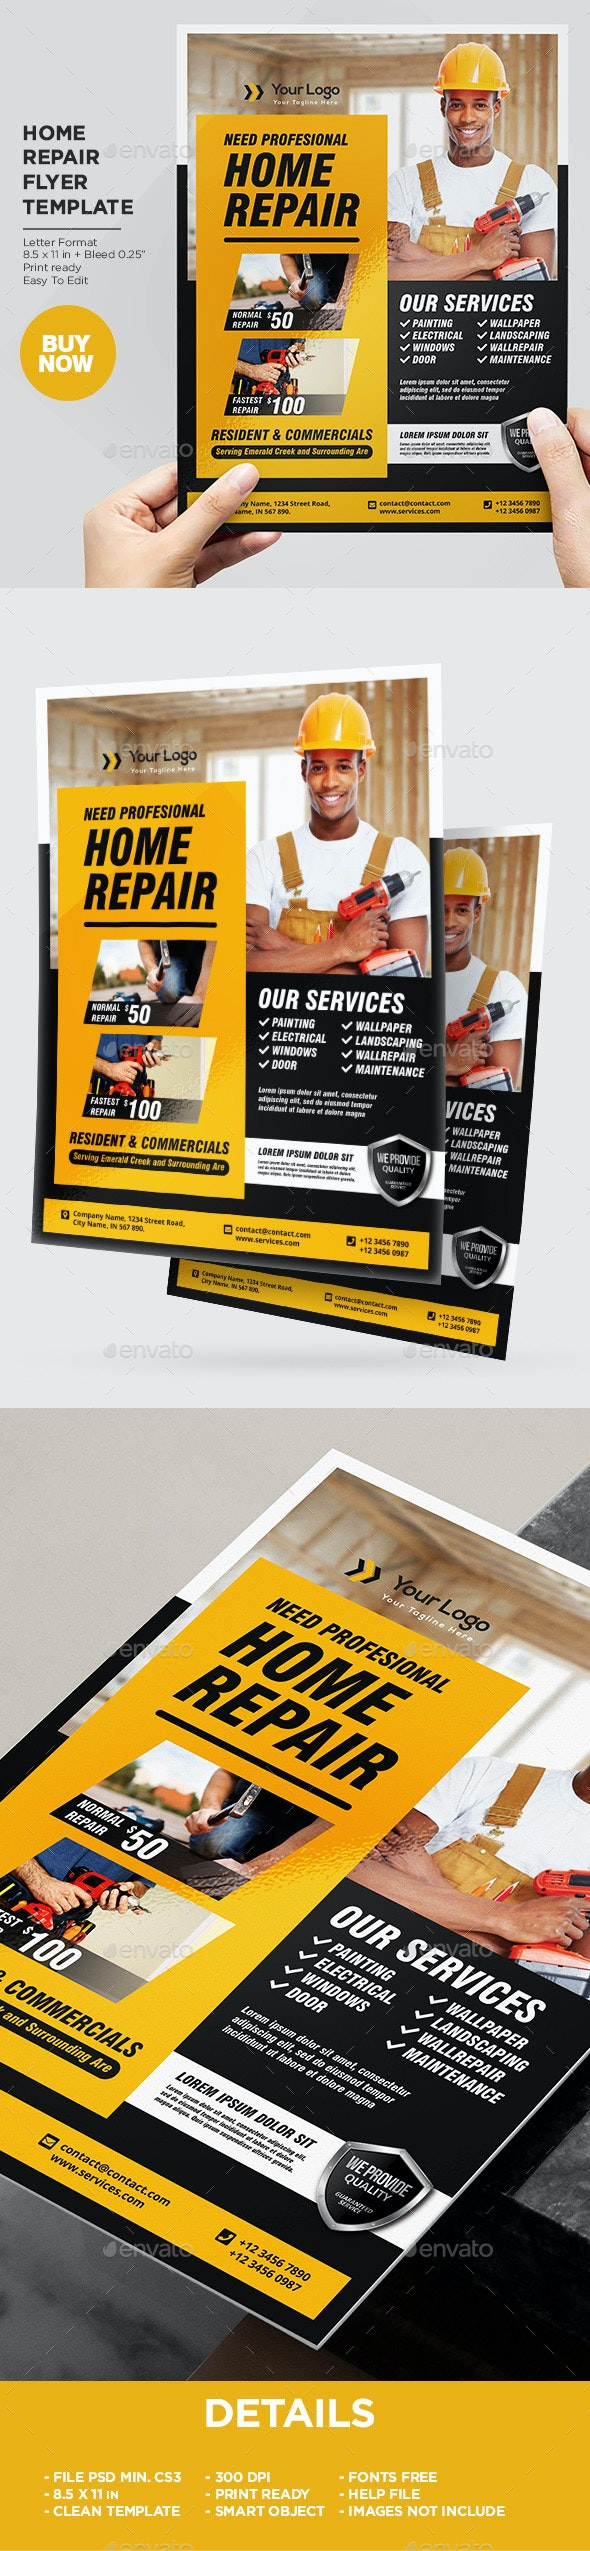 Home Repair Services Flyer Template - Corporate Flyers